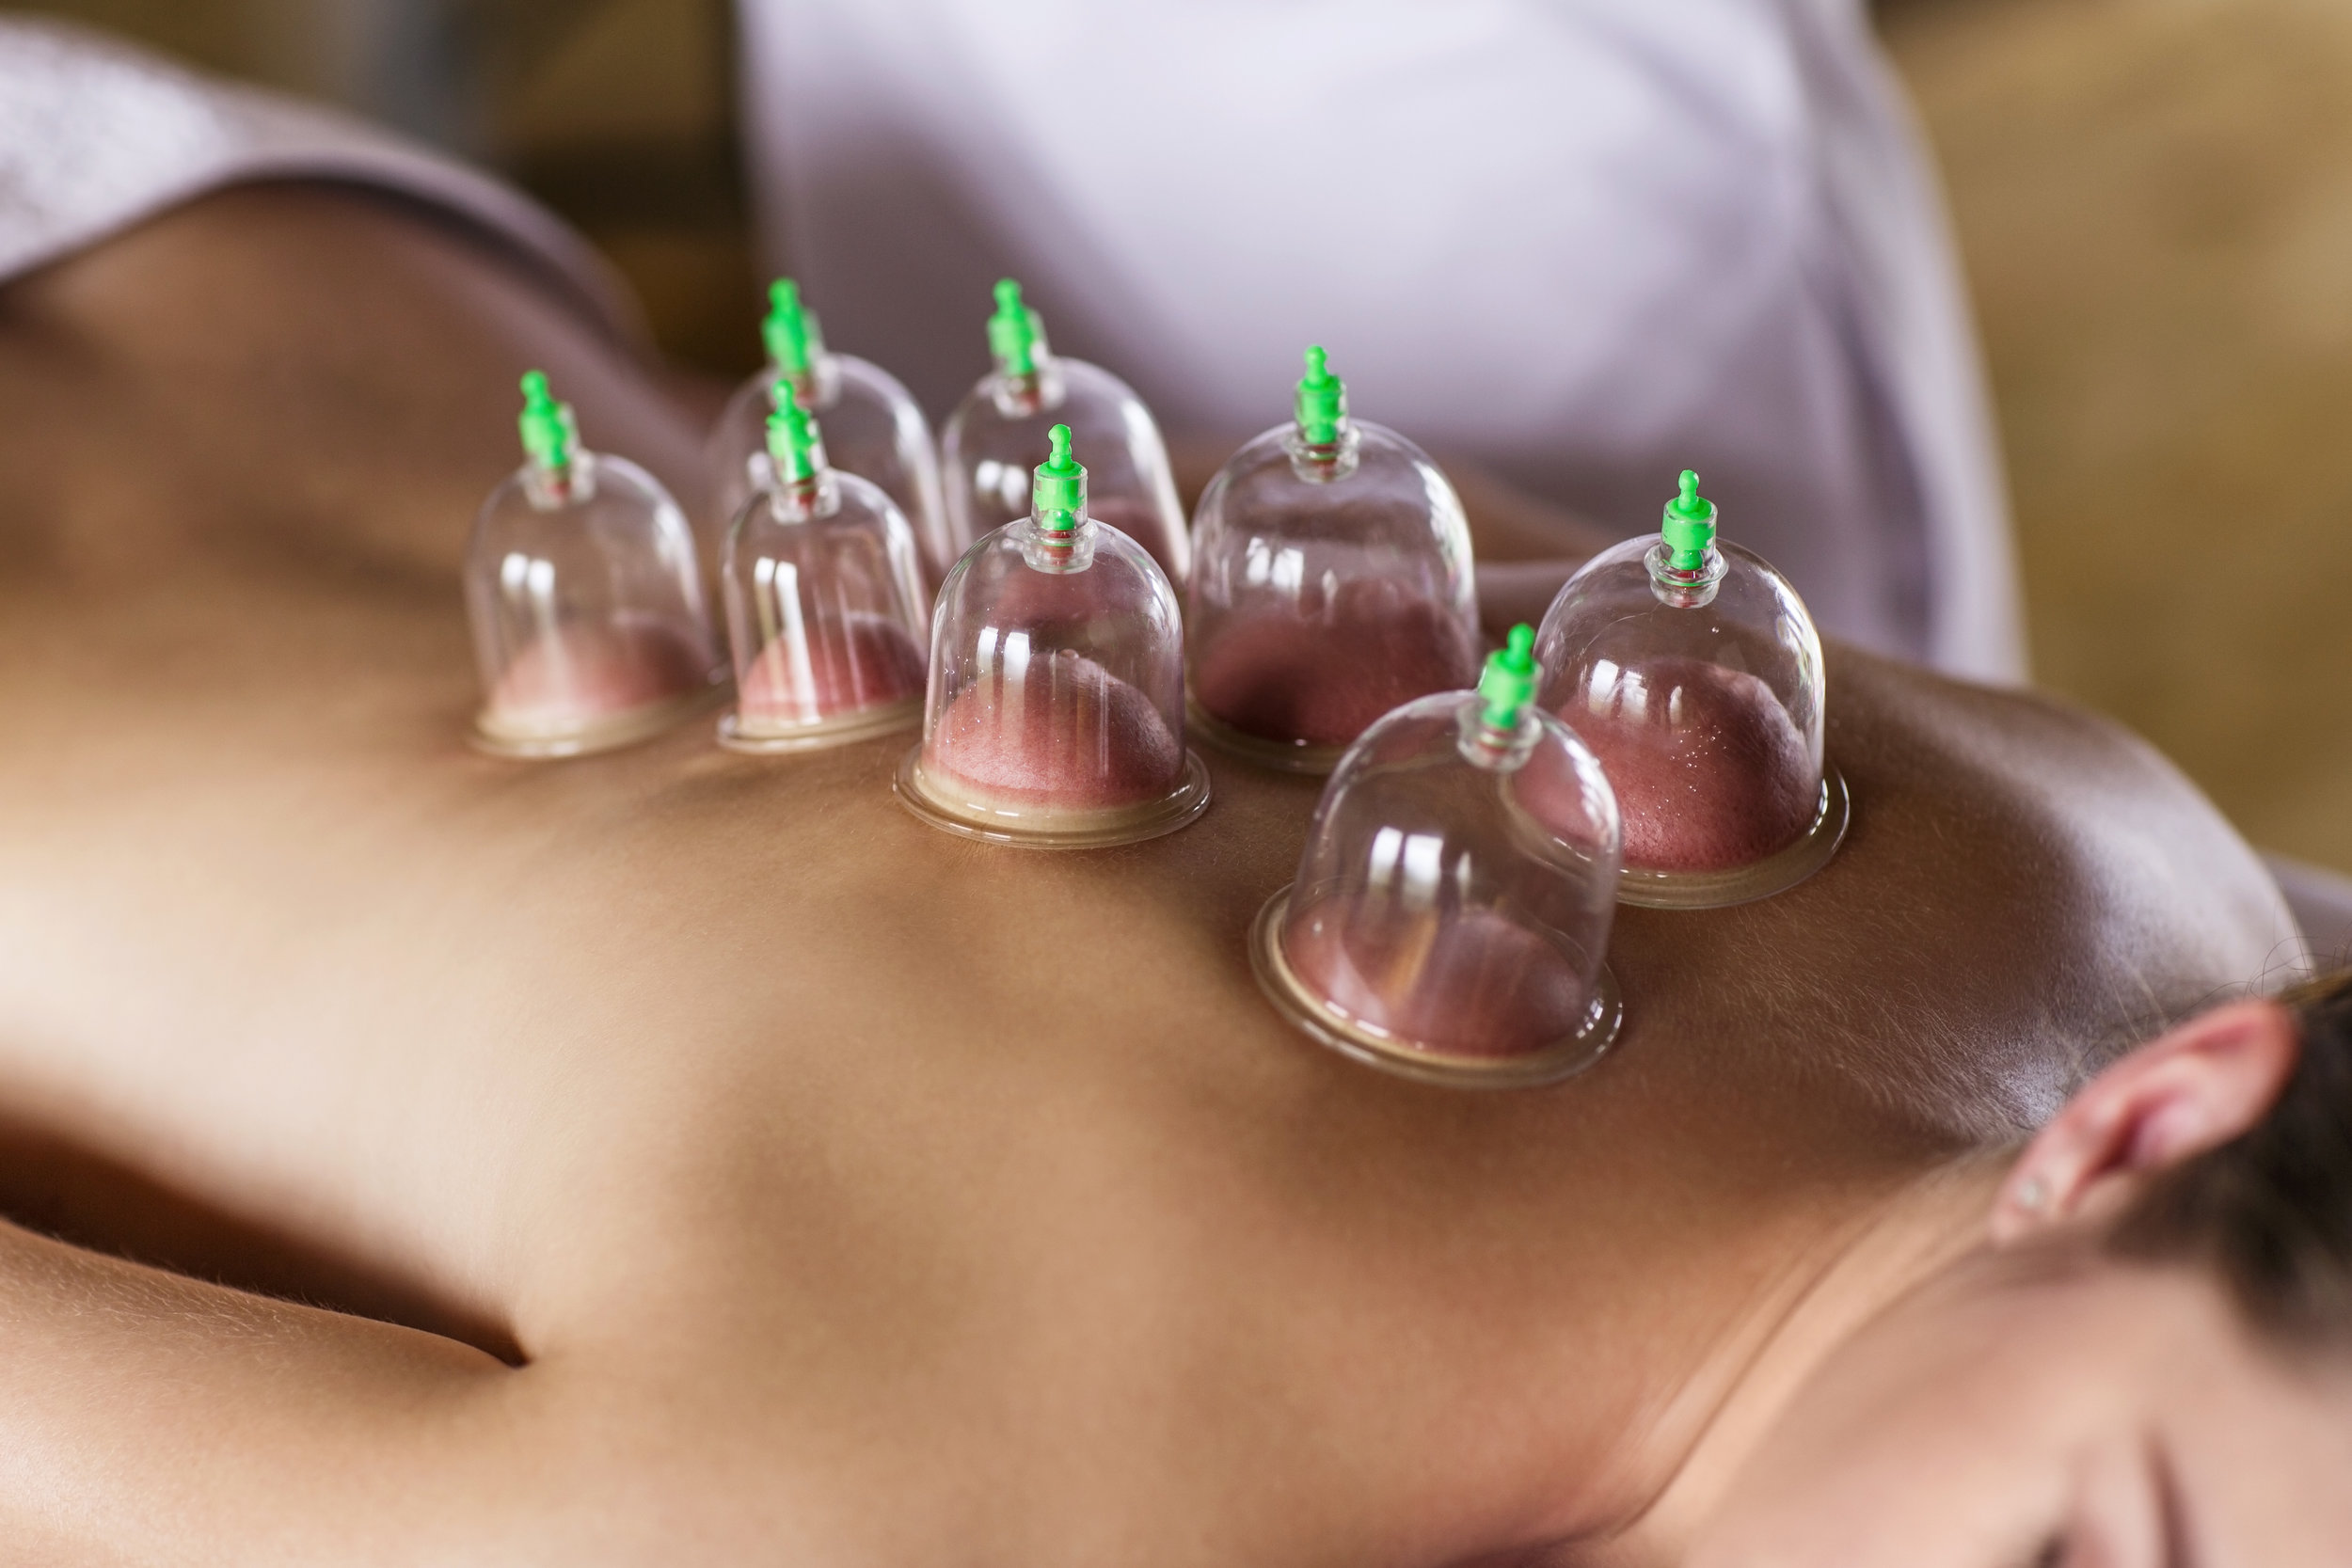 Cupping Therapy - This therapy increases range of motion, decreases pain, decreases soreness, increases blood flow, decreases swelling, decreases inflammation, and decreases the time it takes to heal with certain conditions.